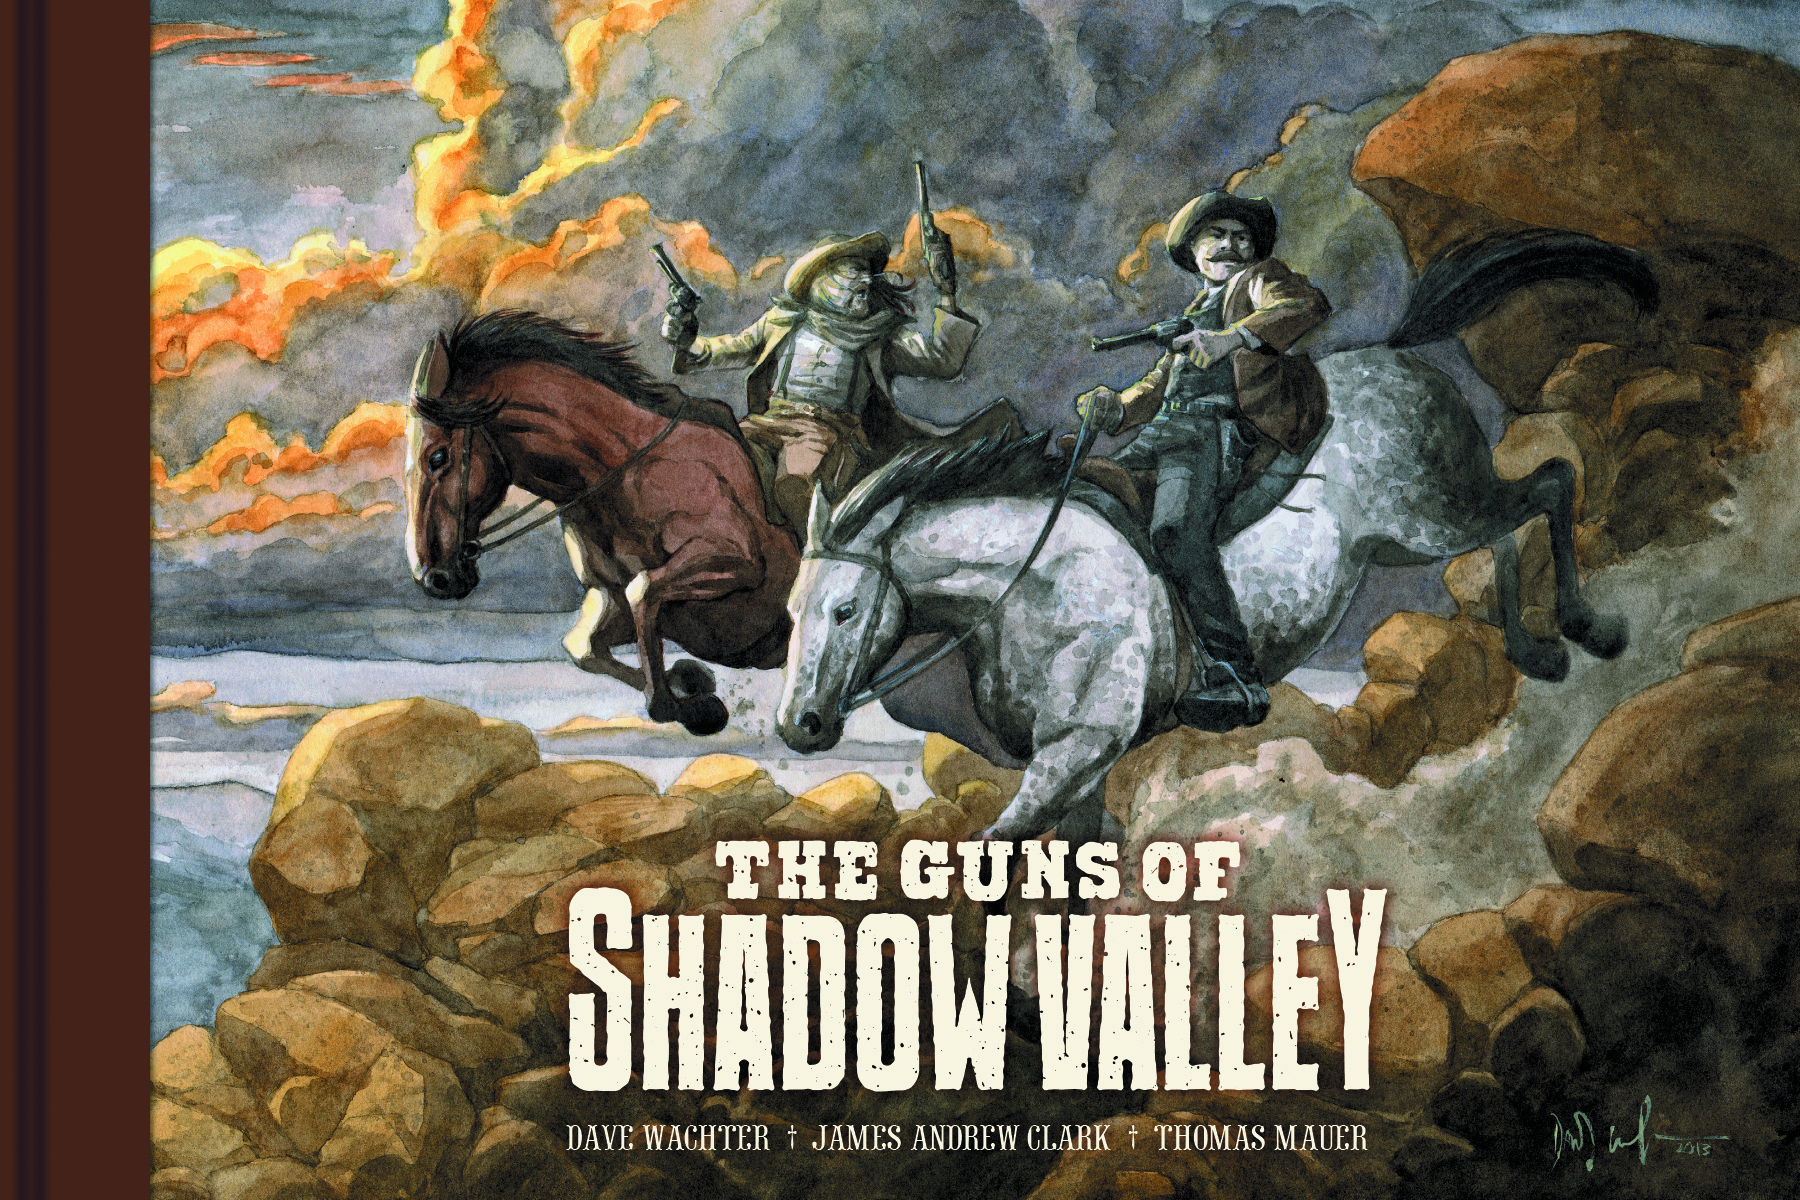 GUNS OF SHADOW VALLEY HC